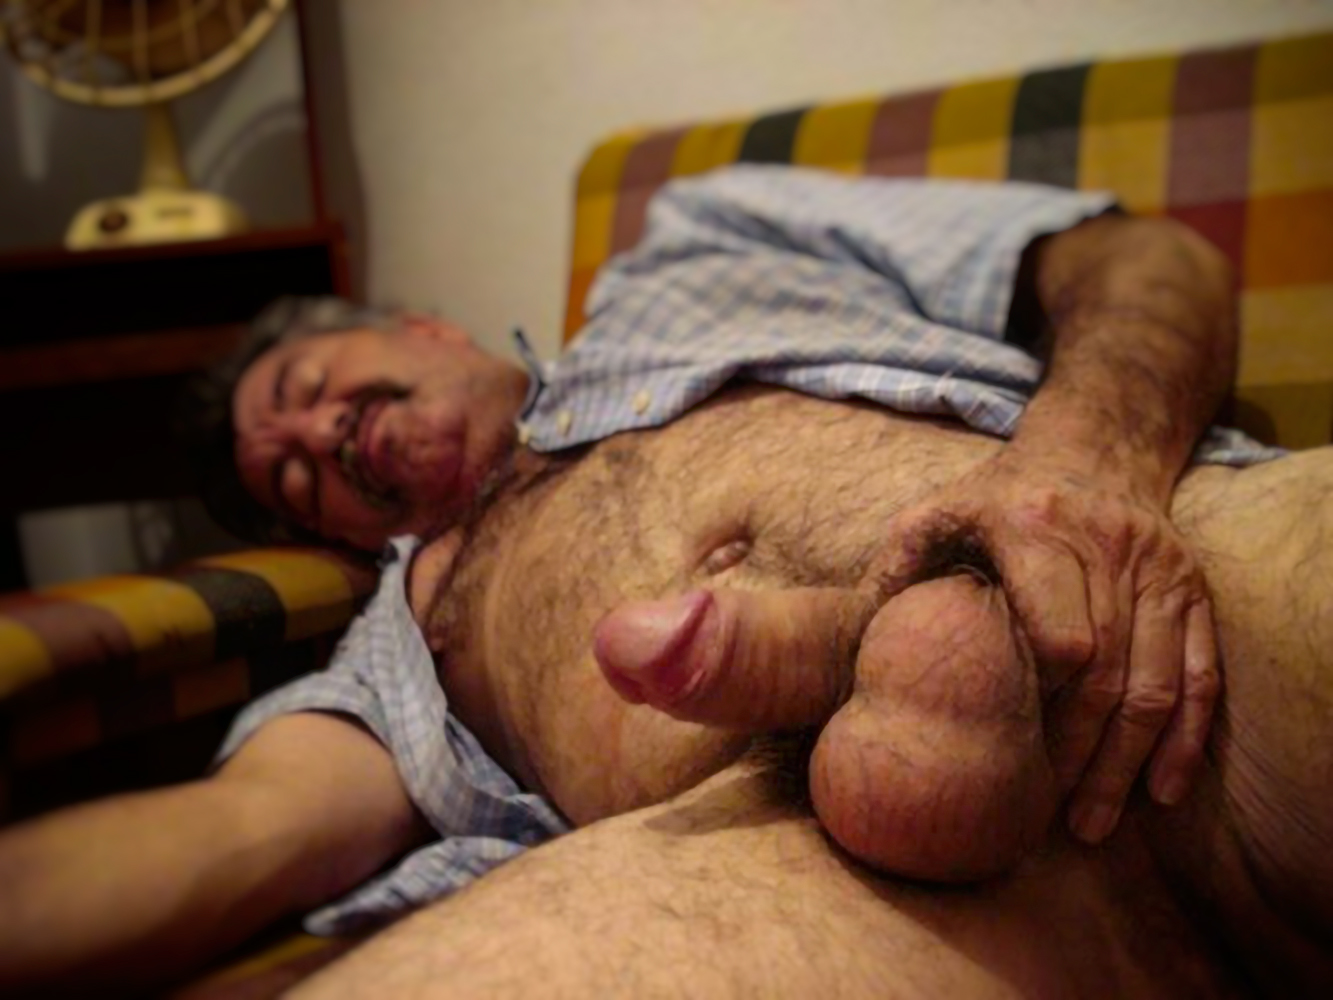 35 Men Over 50 Posing Naked Photos Therapy